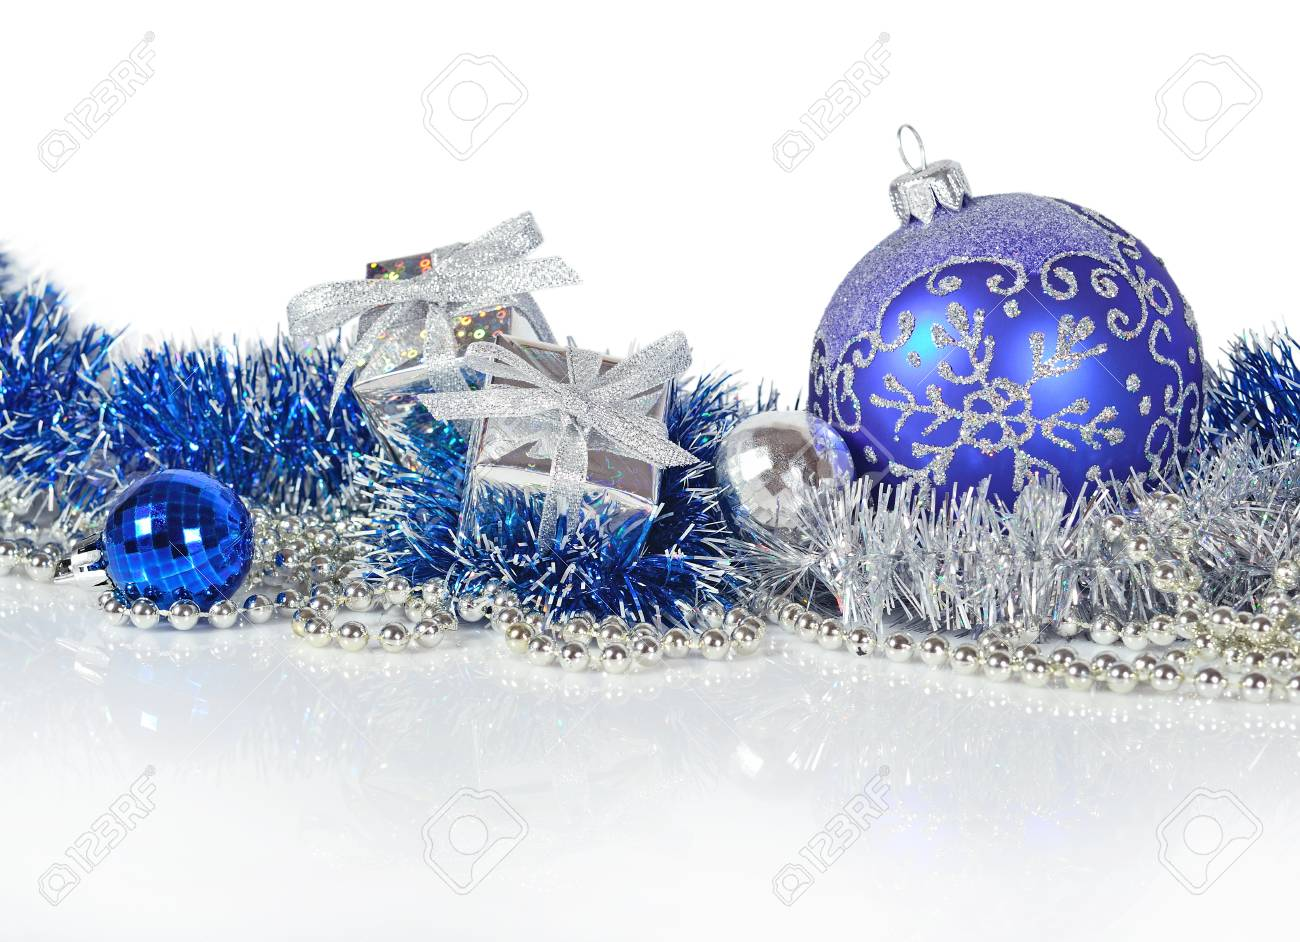 blue and silver christmas decorations on a white background stock photo 63249762